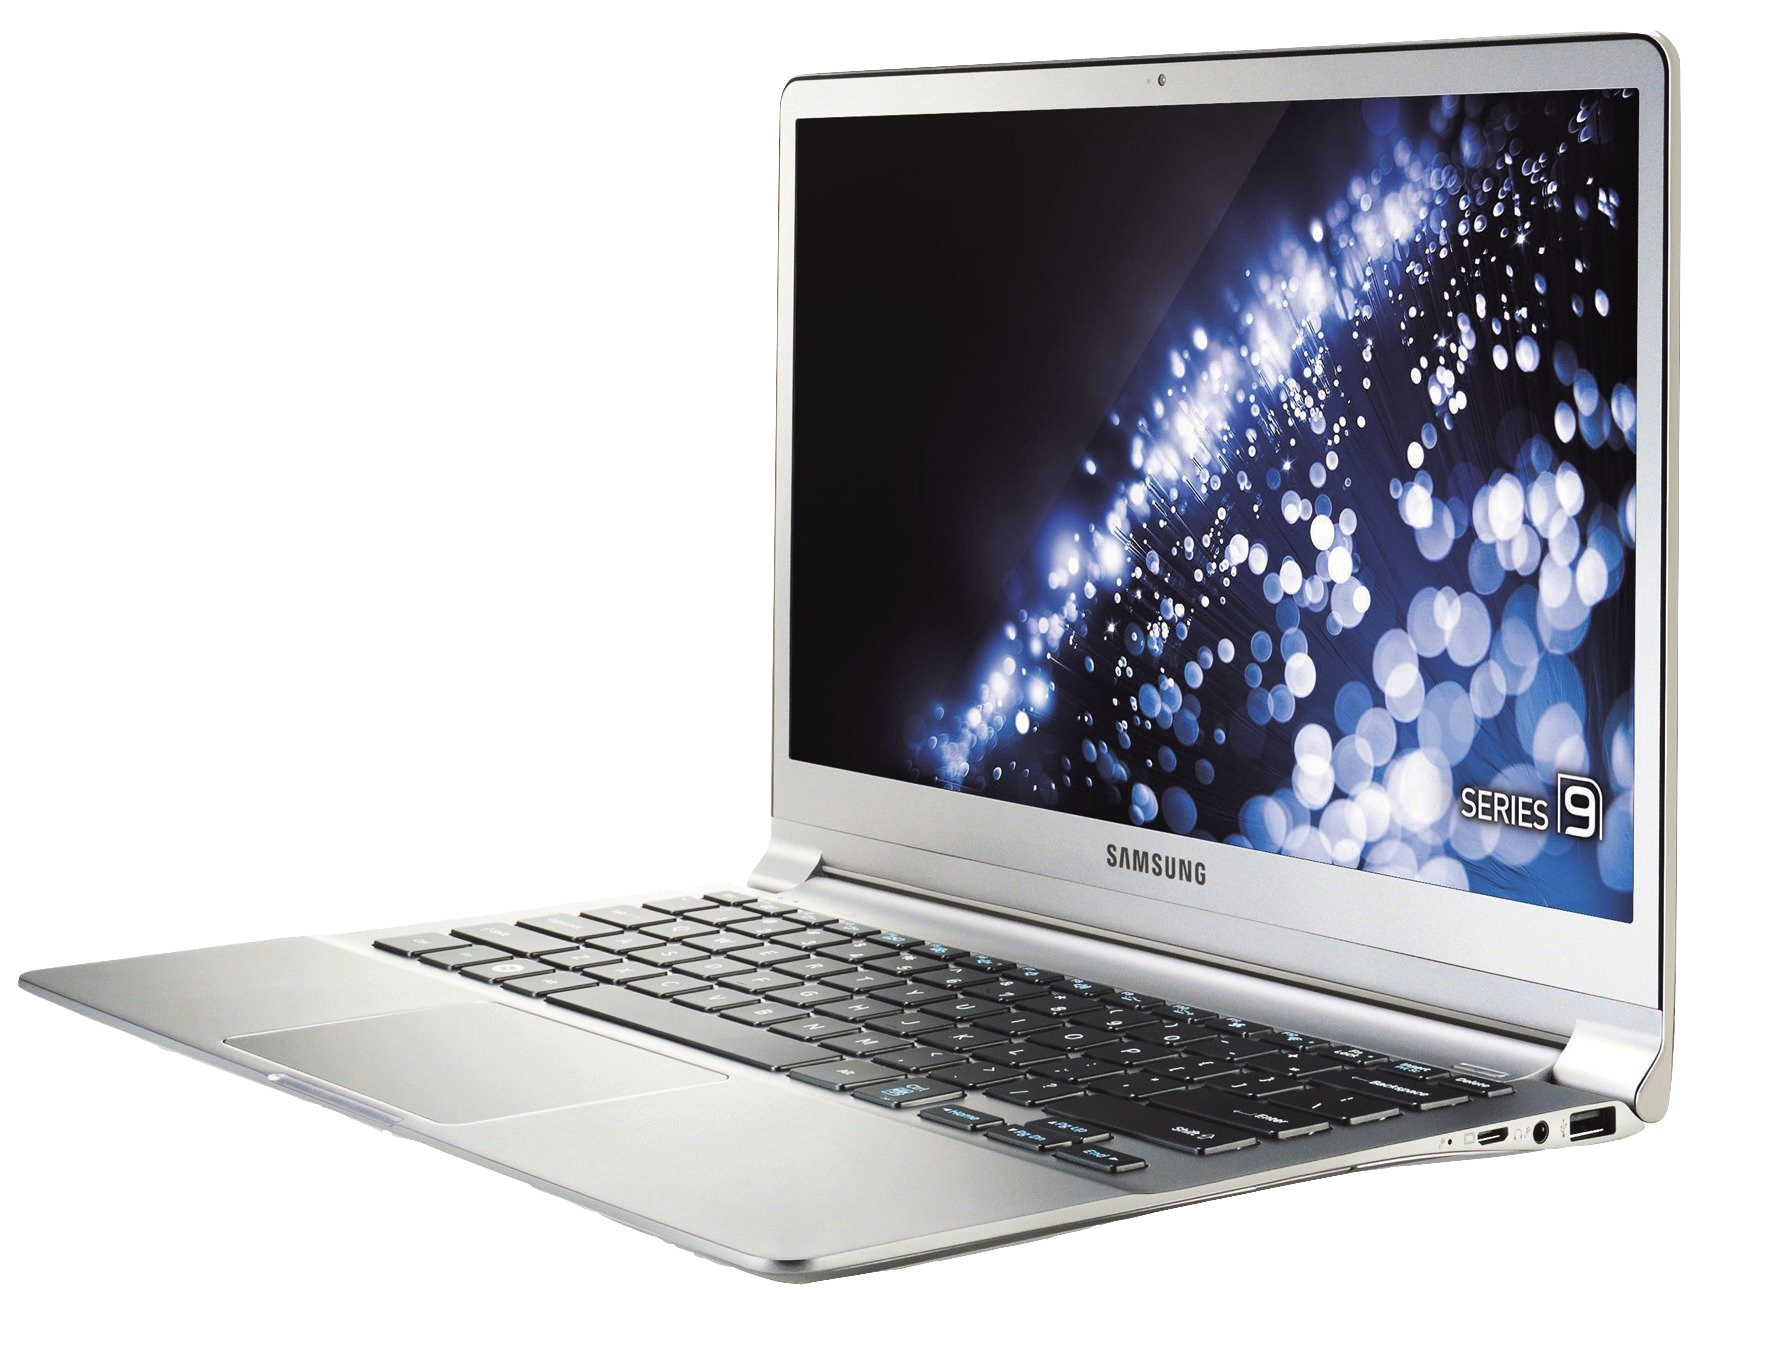 Laptop notebook PNG image - PNG Lap